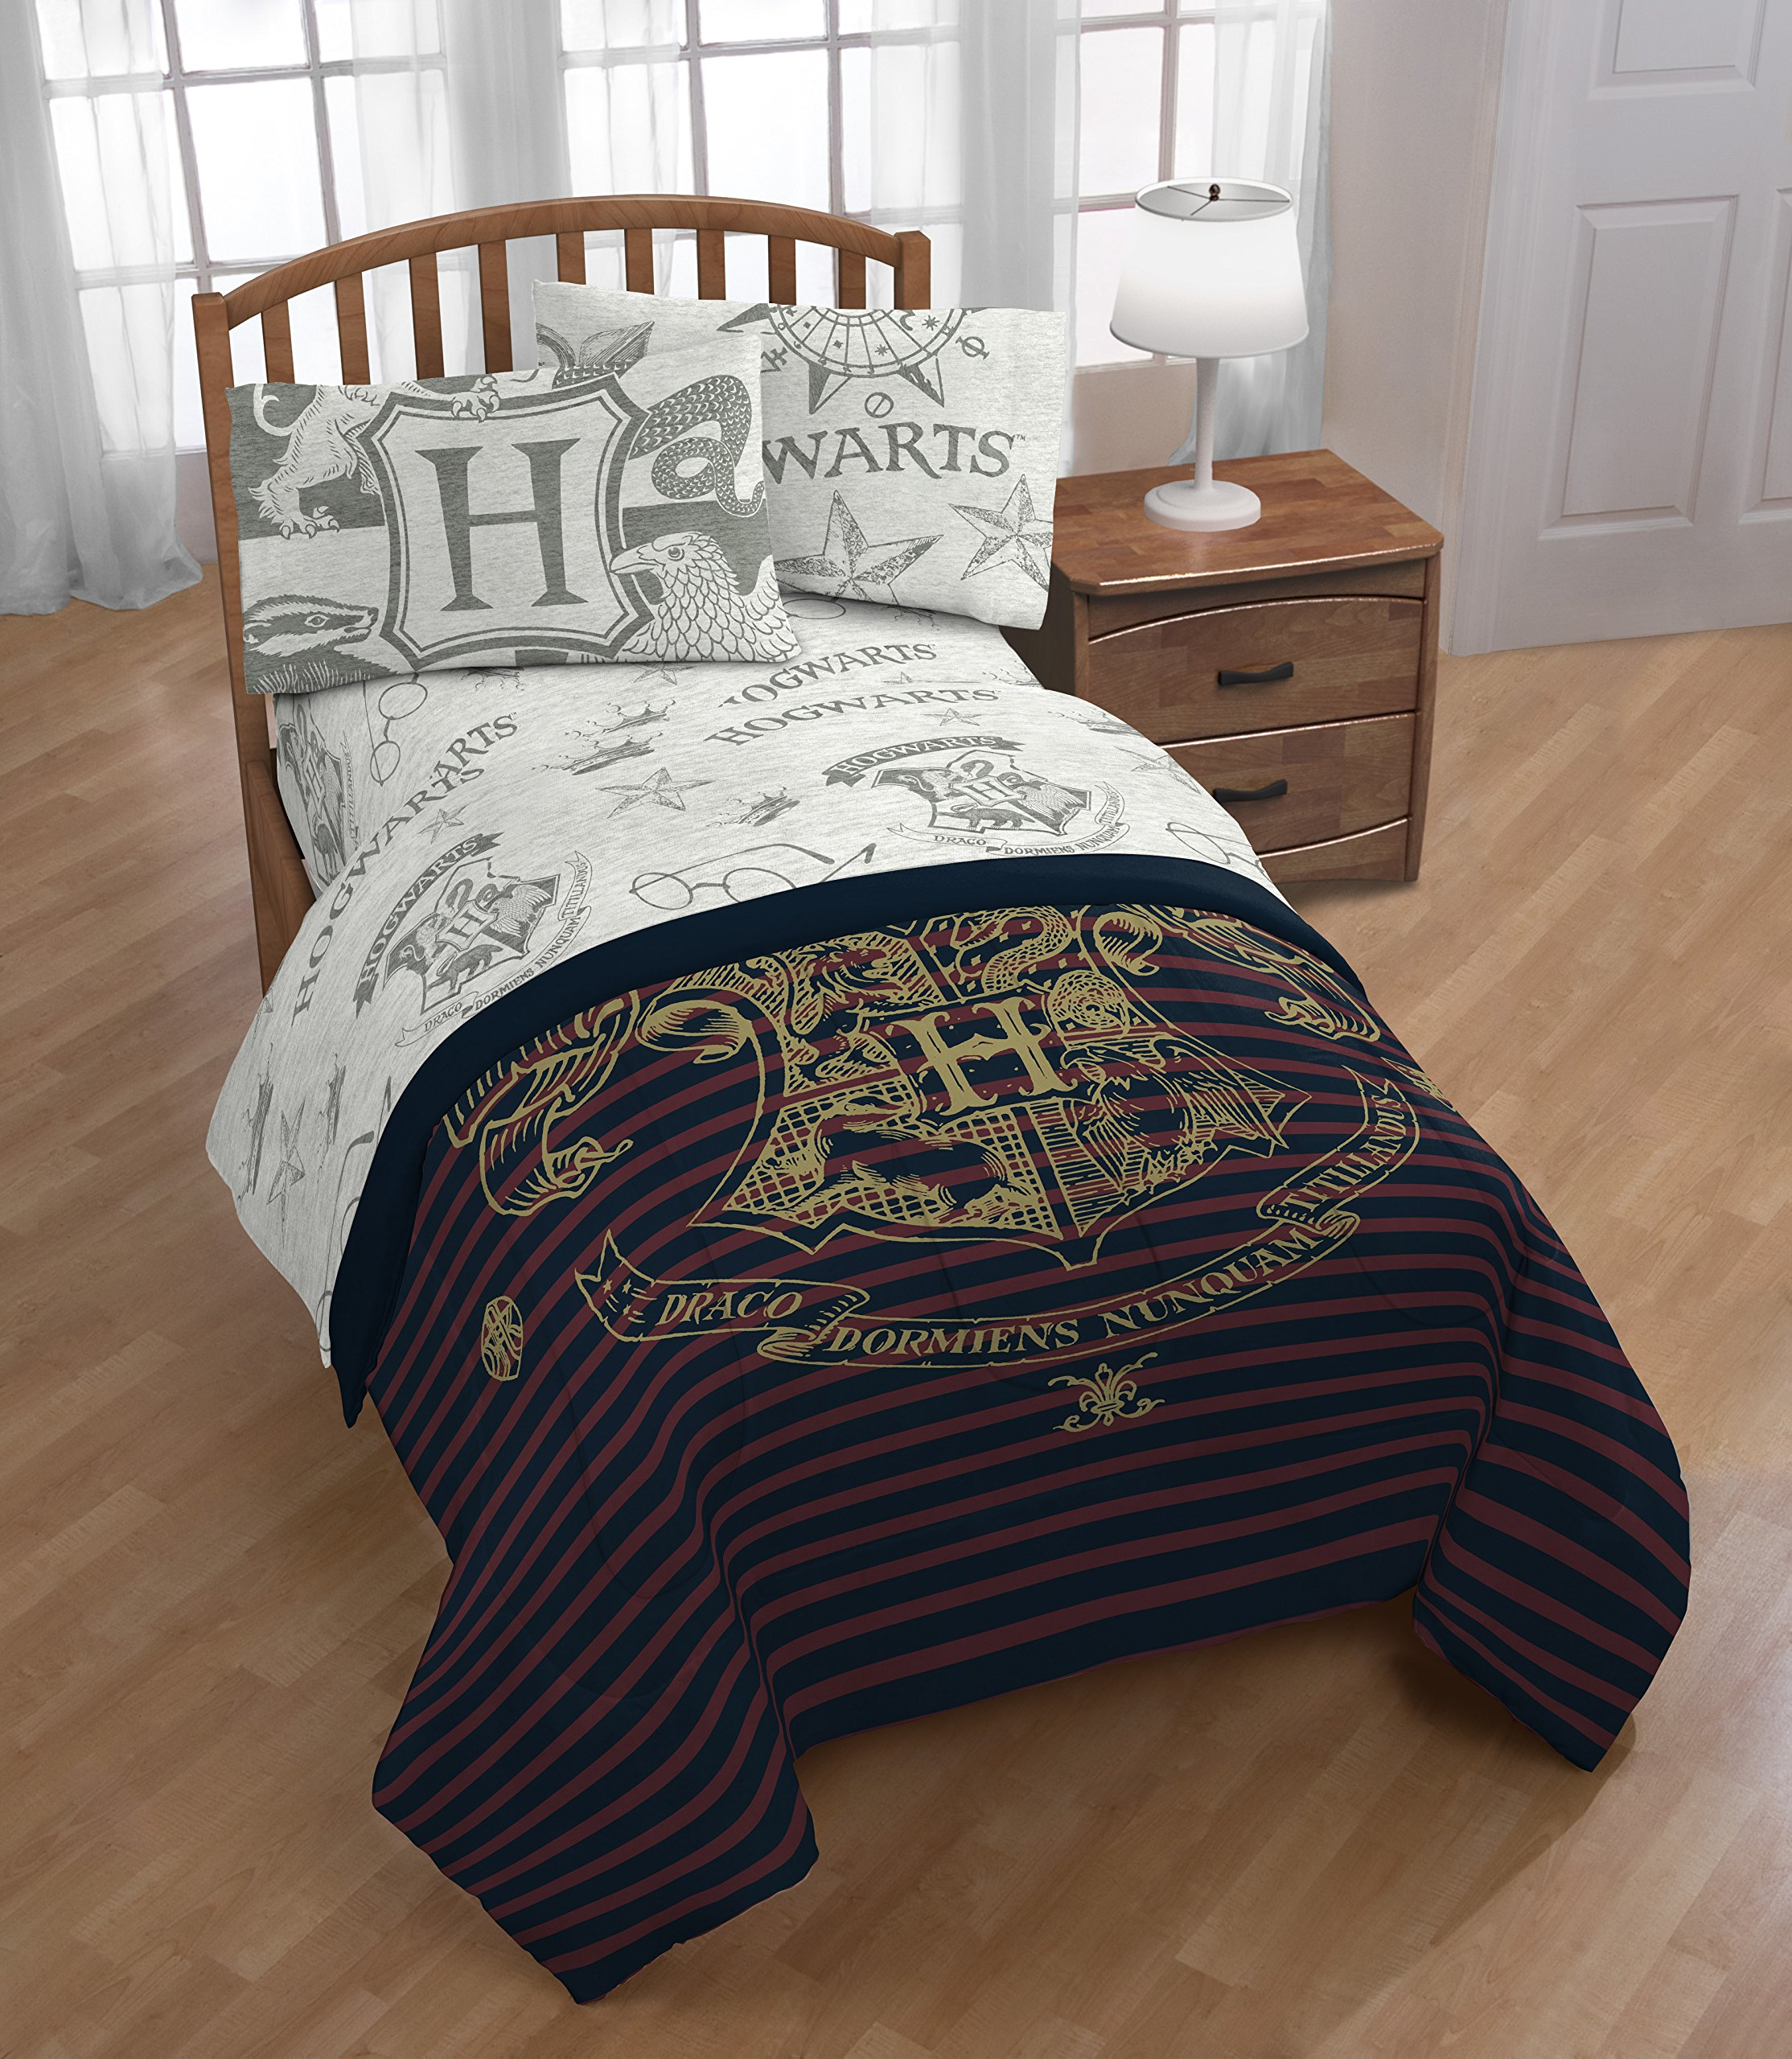 A&L 3 Piece Kids Grey Harry Potter Sheet Set Twin, Navy Hogwarts Bedding Star Crown Bed Sheets Birds Animal Stripe Print Glasses Novel Trendy Adventure Soft Cozy Red Gray Durable, Polyester